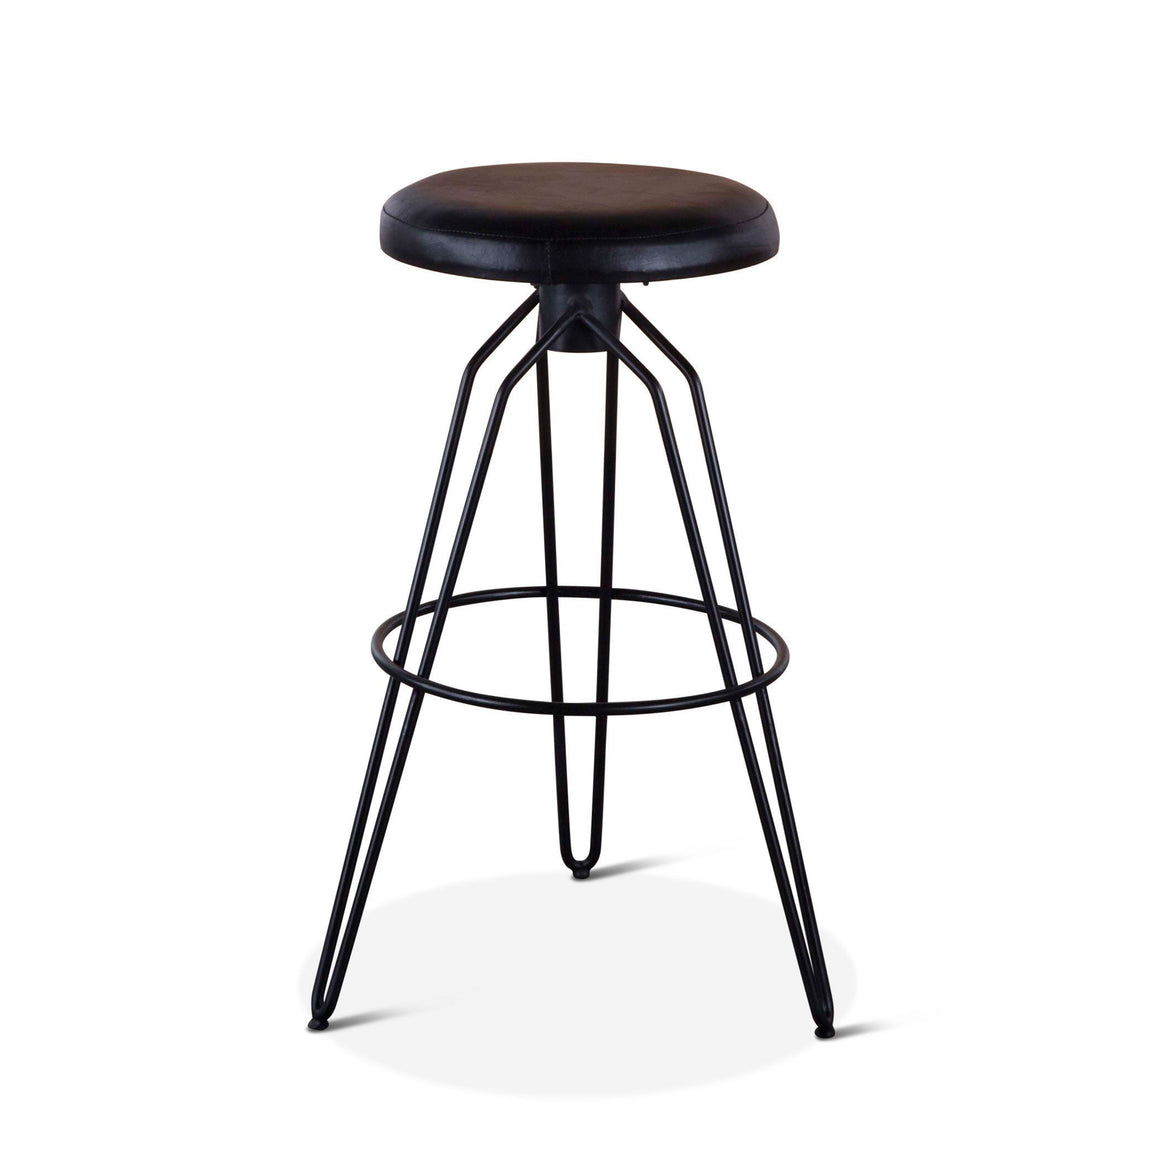 Pair of Winston Black Leather Bar Stool - Rustic Deco Incorporated